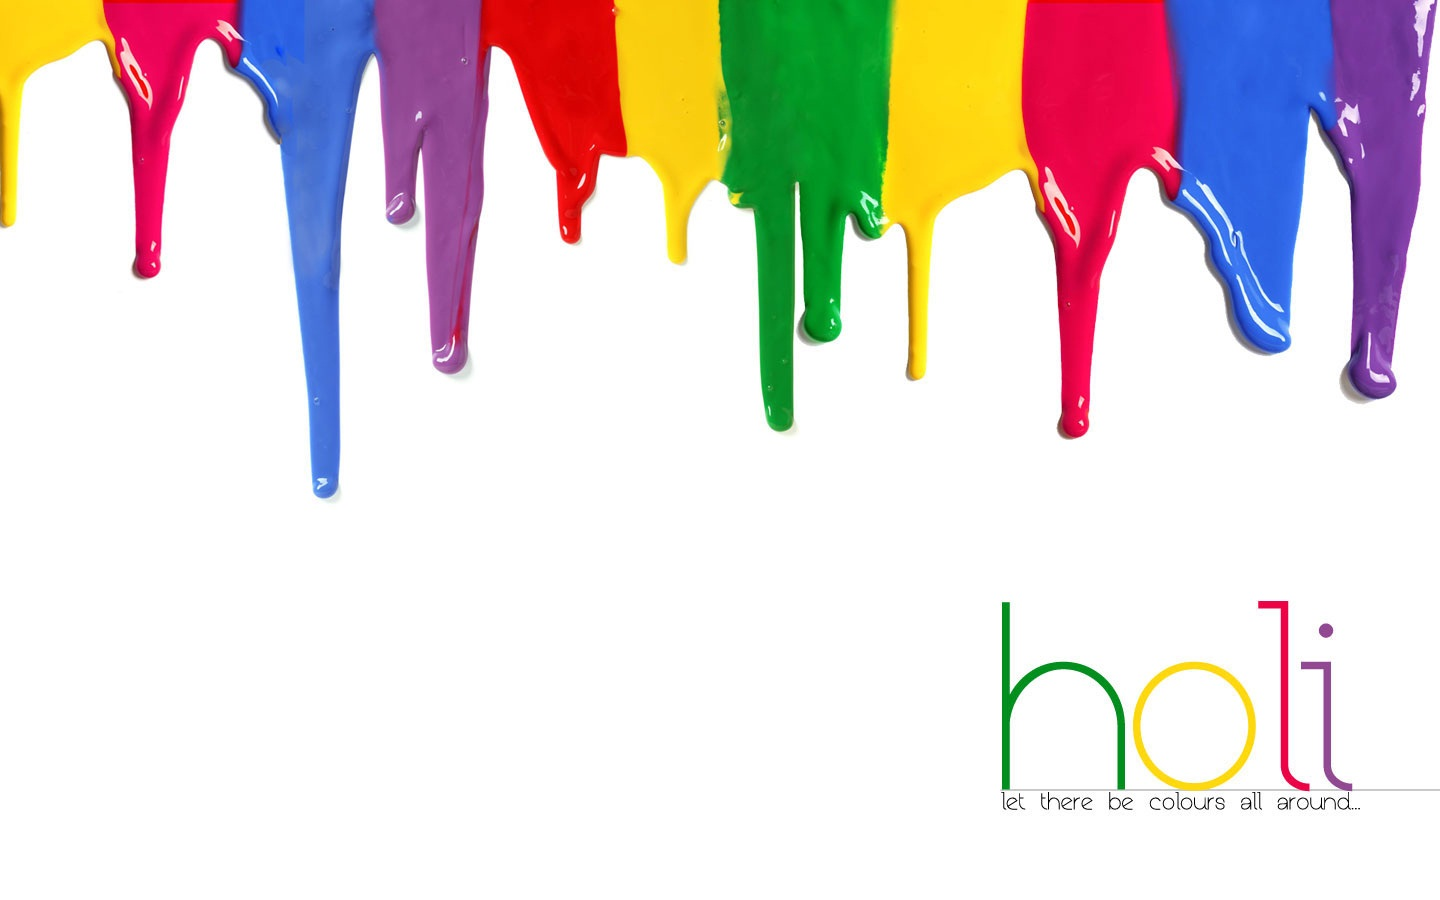 Holi greetings wallpapers 1440x900 113760 holi greetings 1440 x 900 download close m4hsunfo